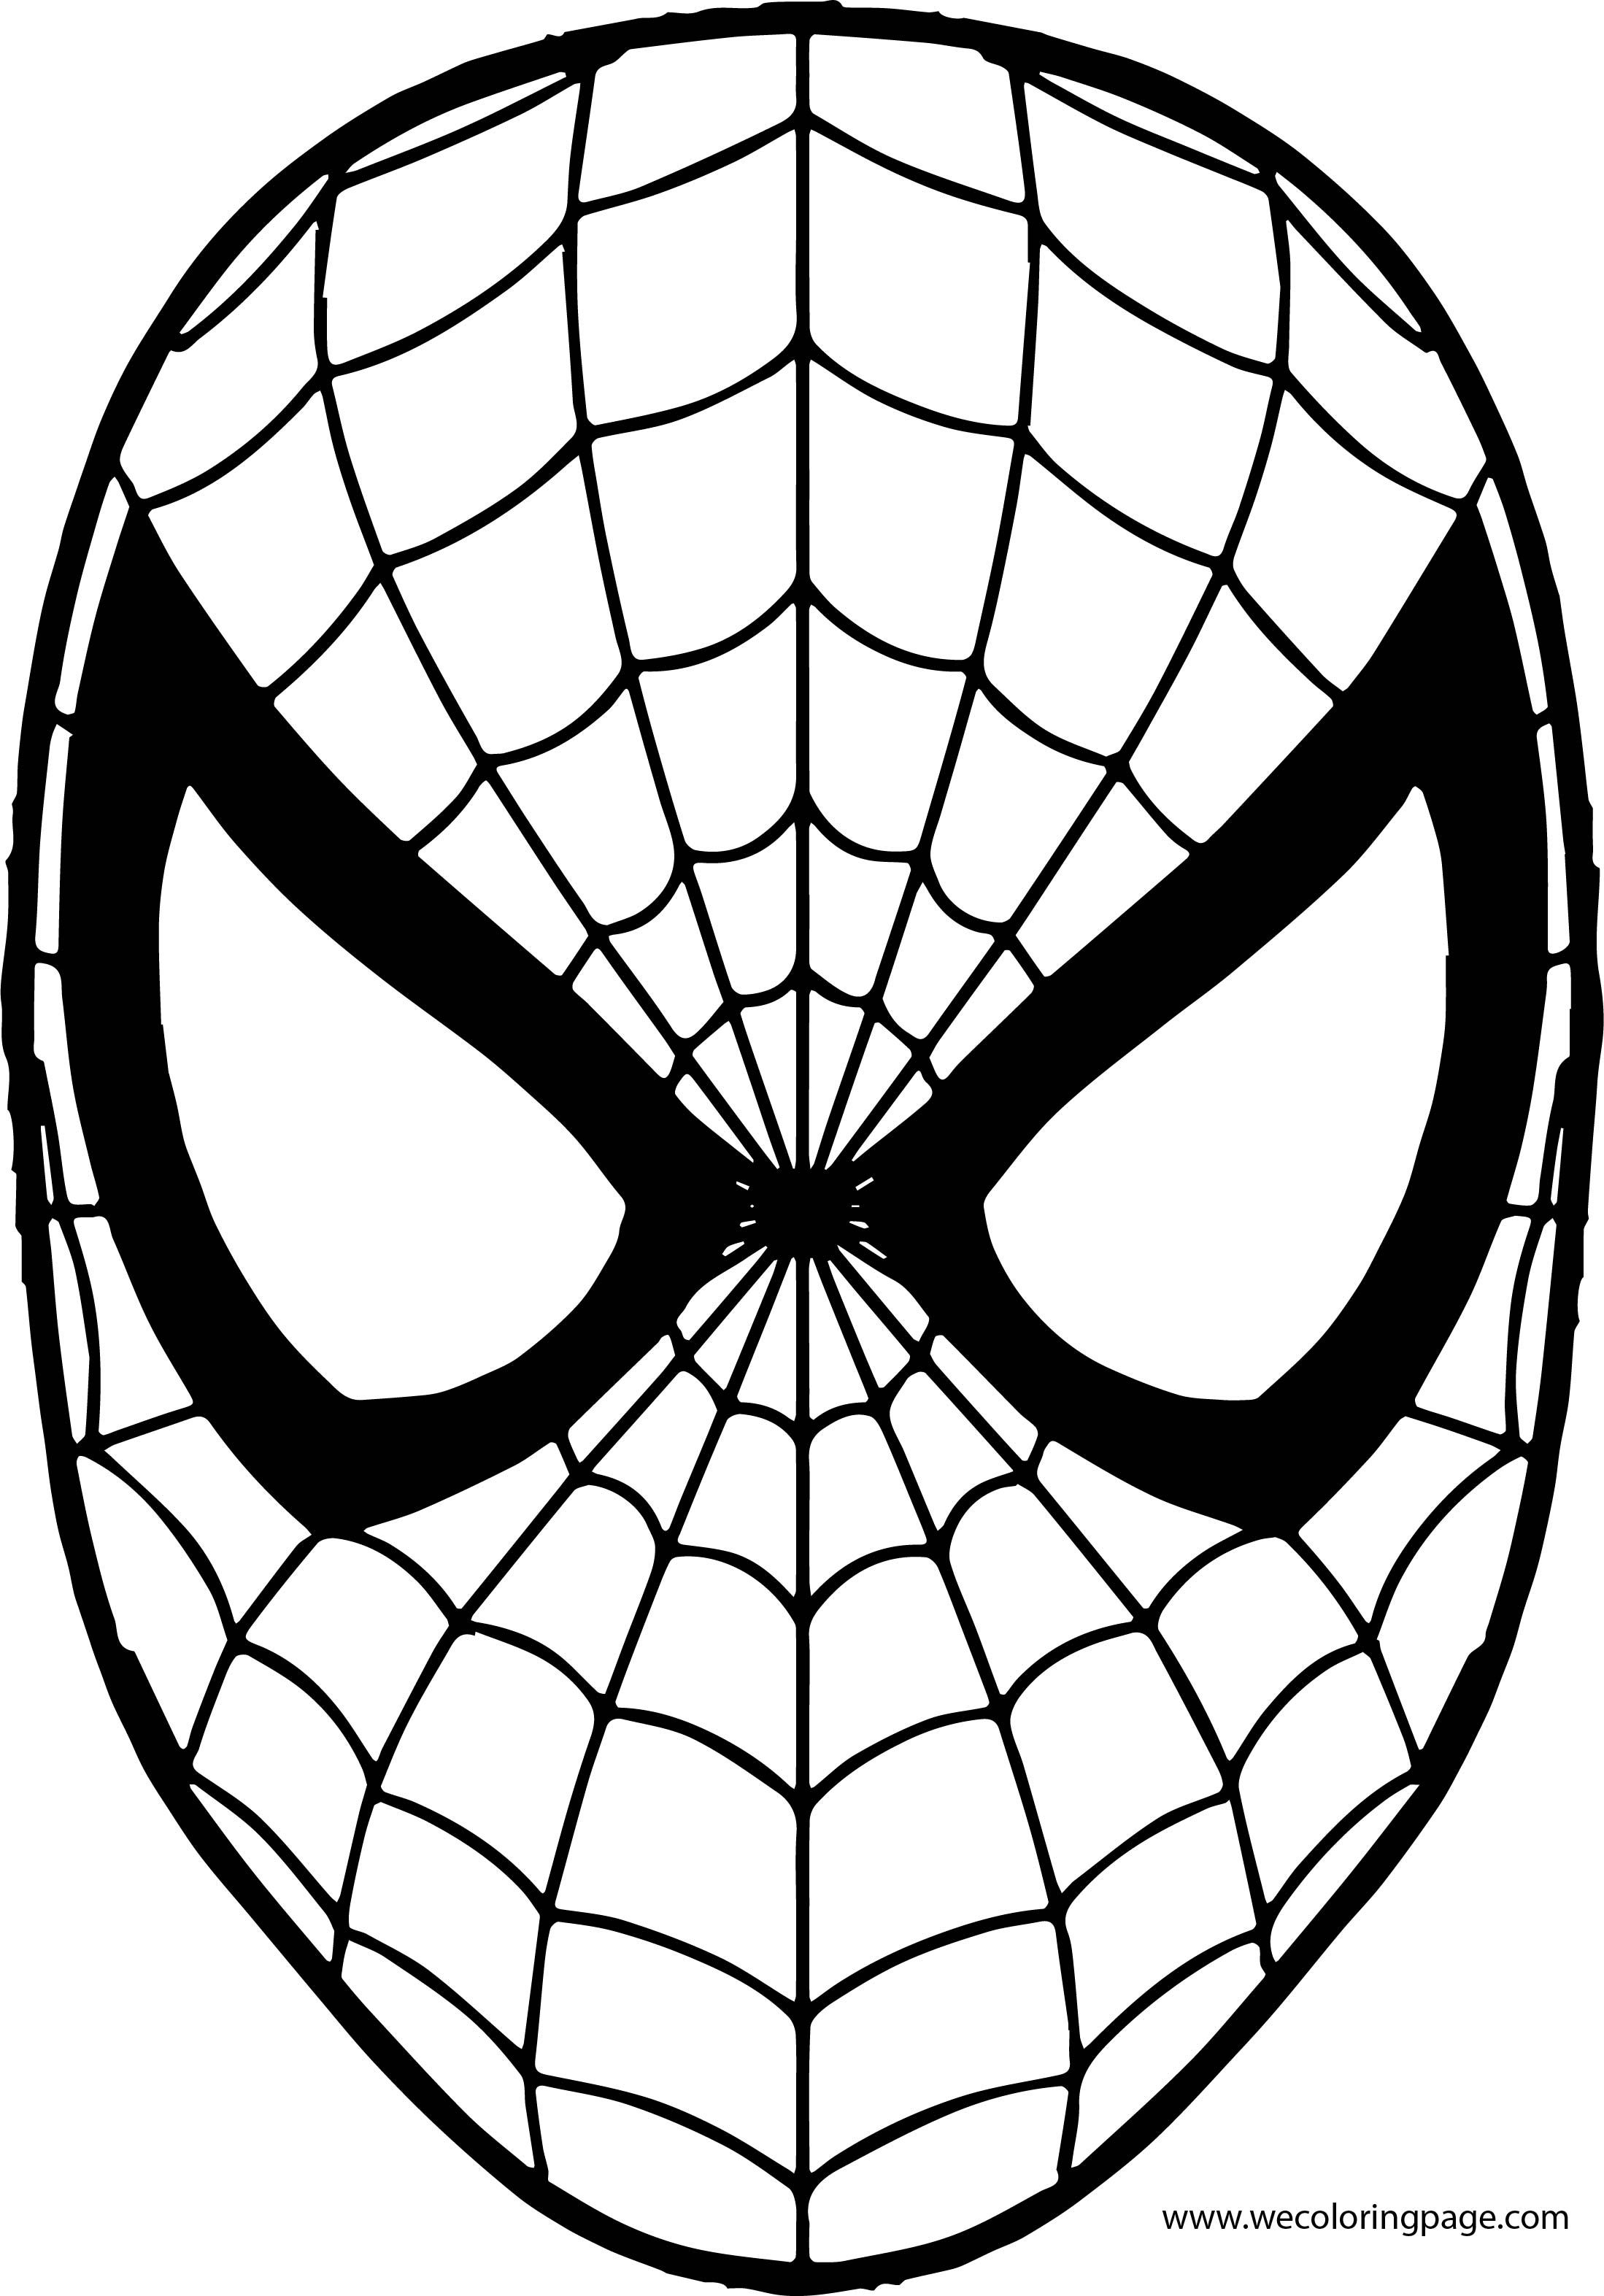 coloring face mask spiderman mask coloring page kreatívne coloring face mask